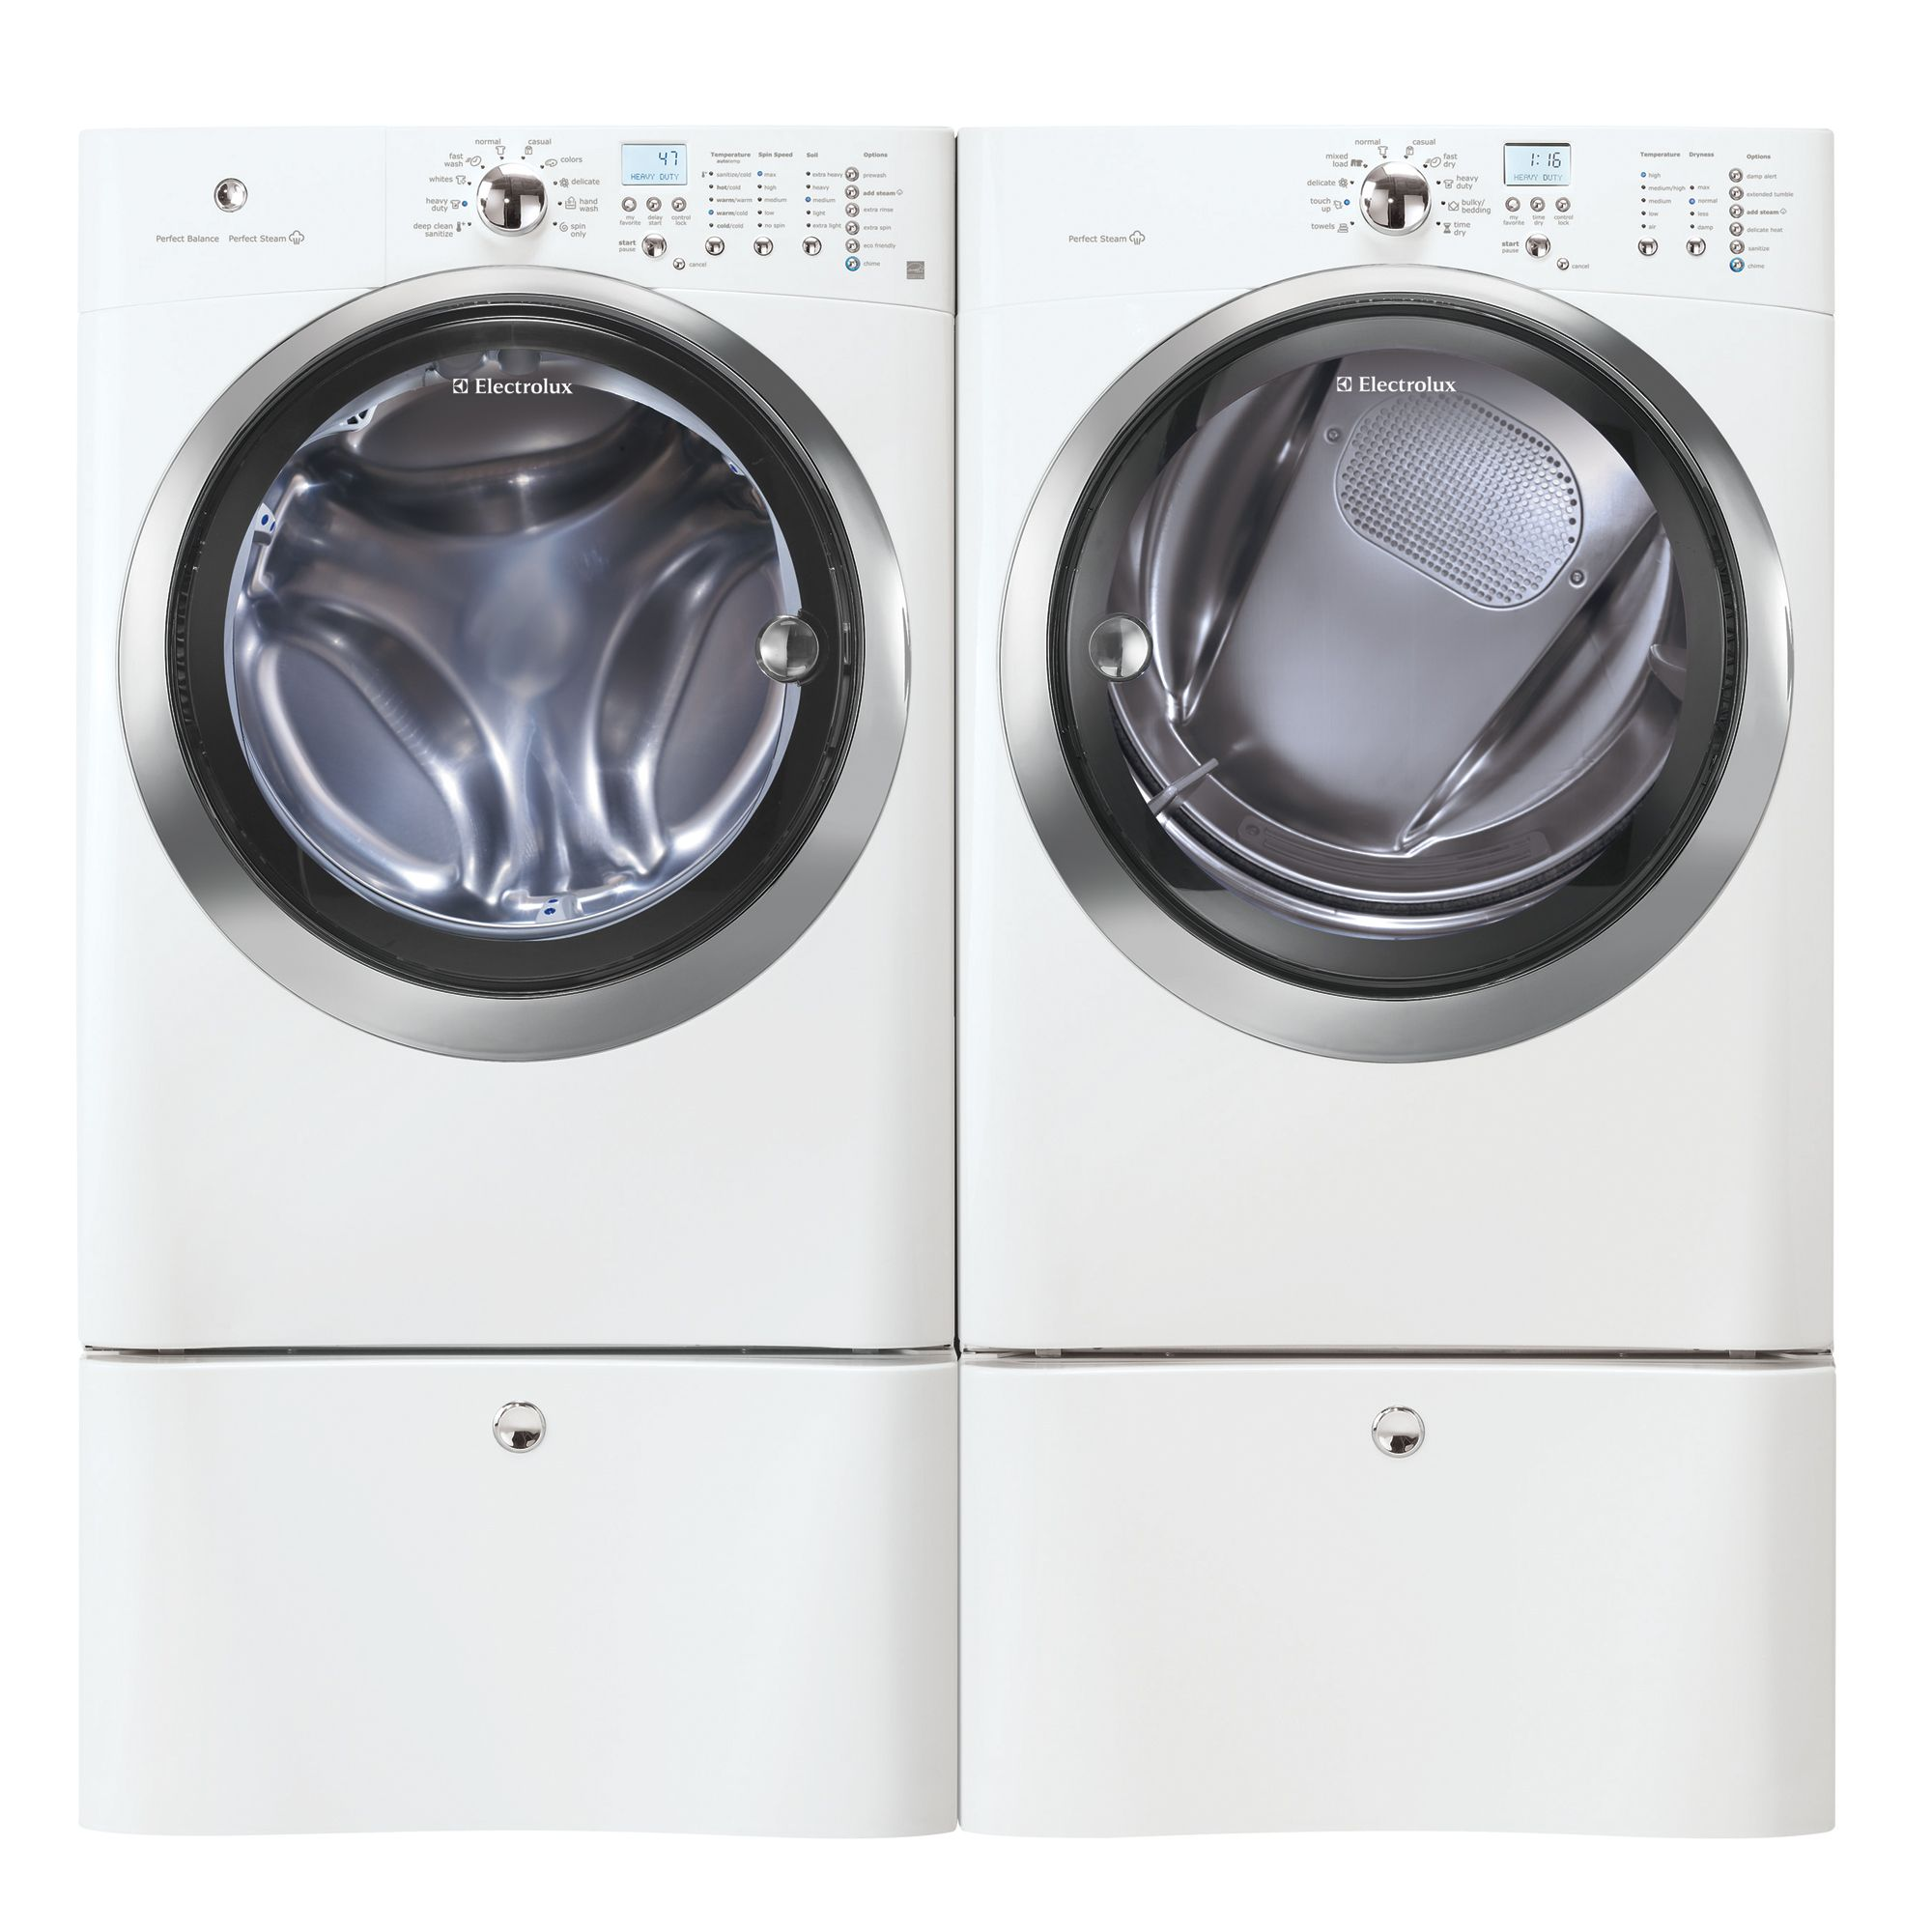 Electrolux EIFLS55IIW 4.1 cu. ft. Front-load Washer w/ Steam - Island White